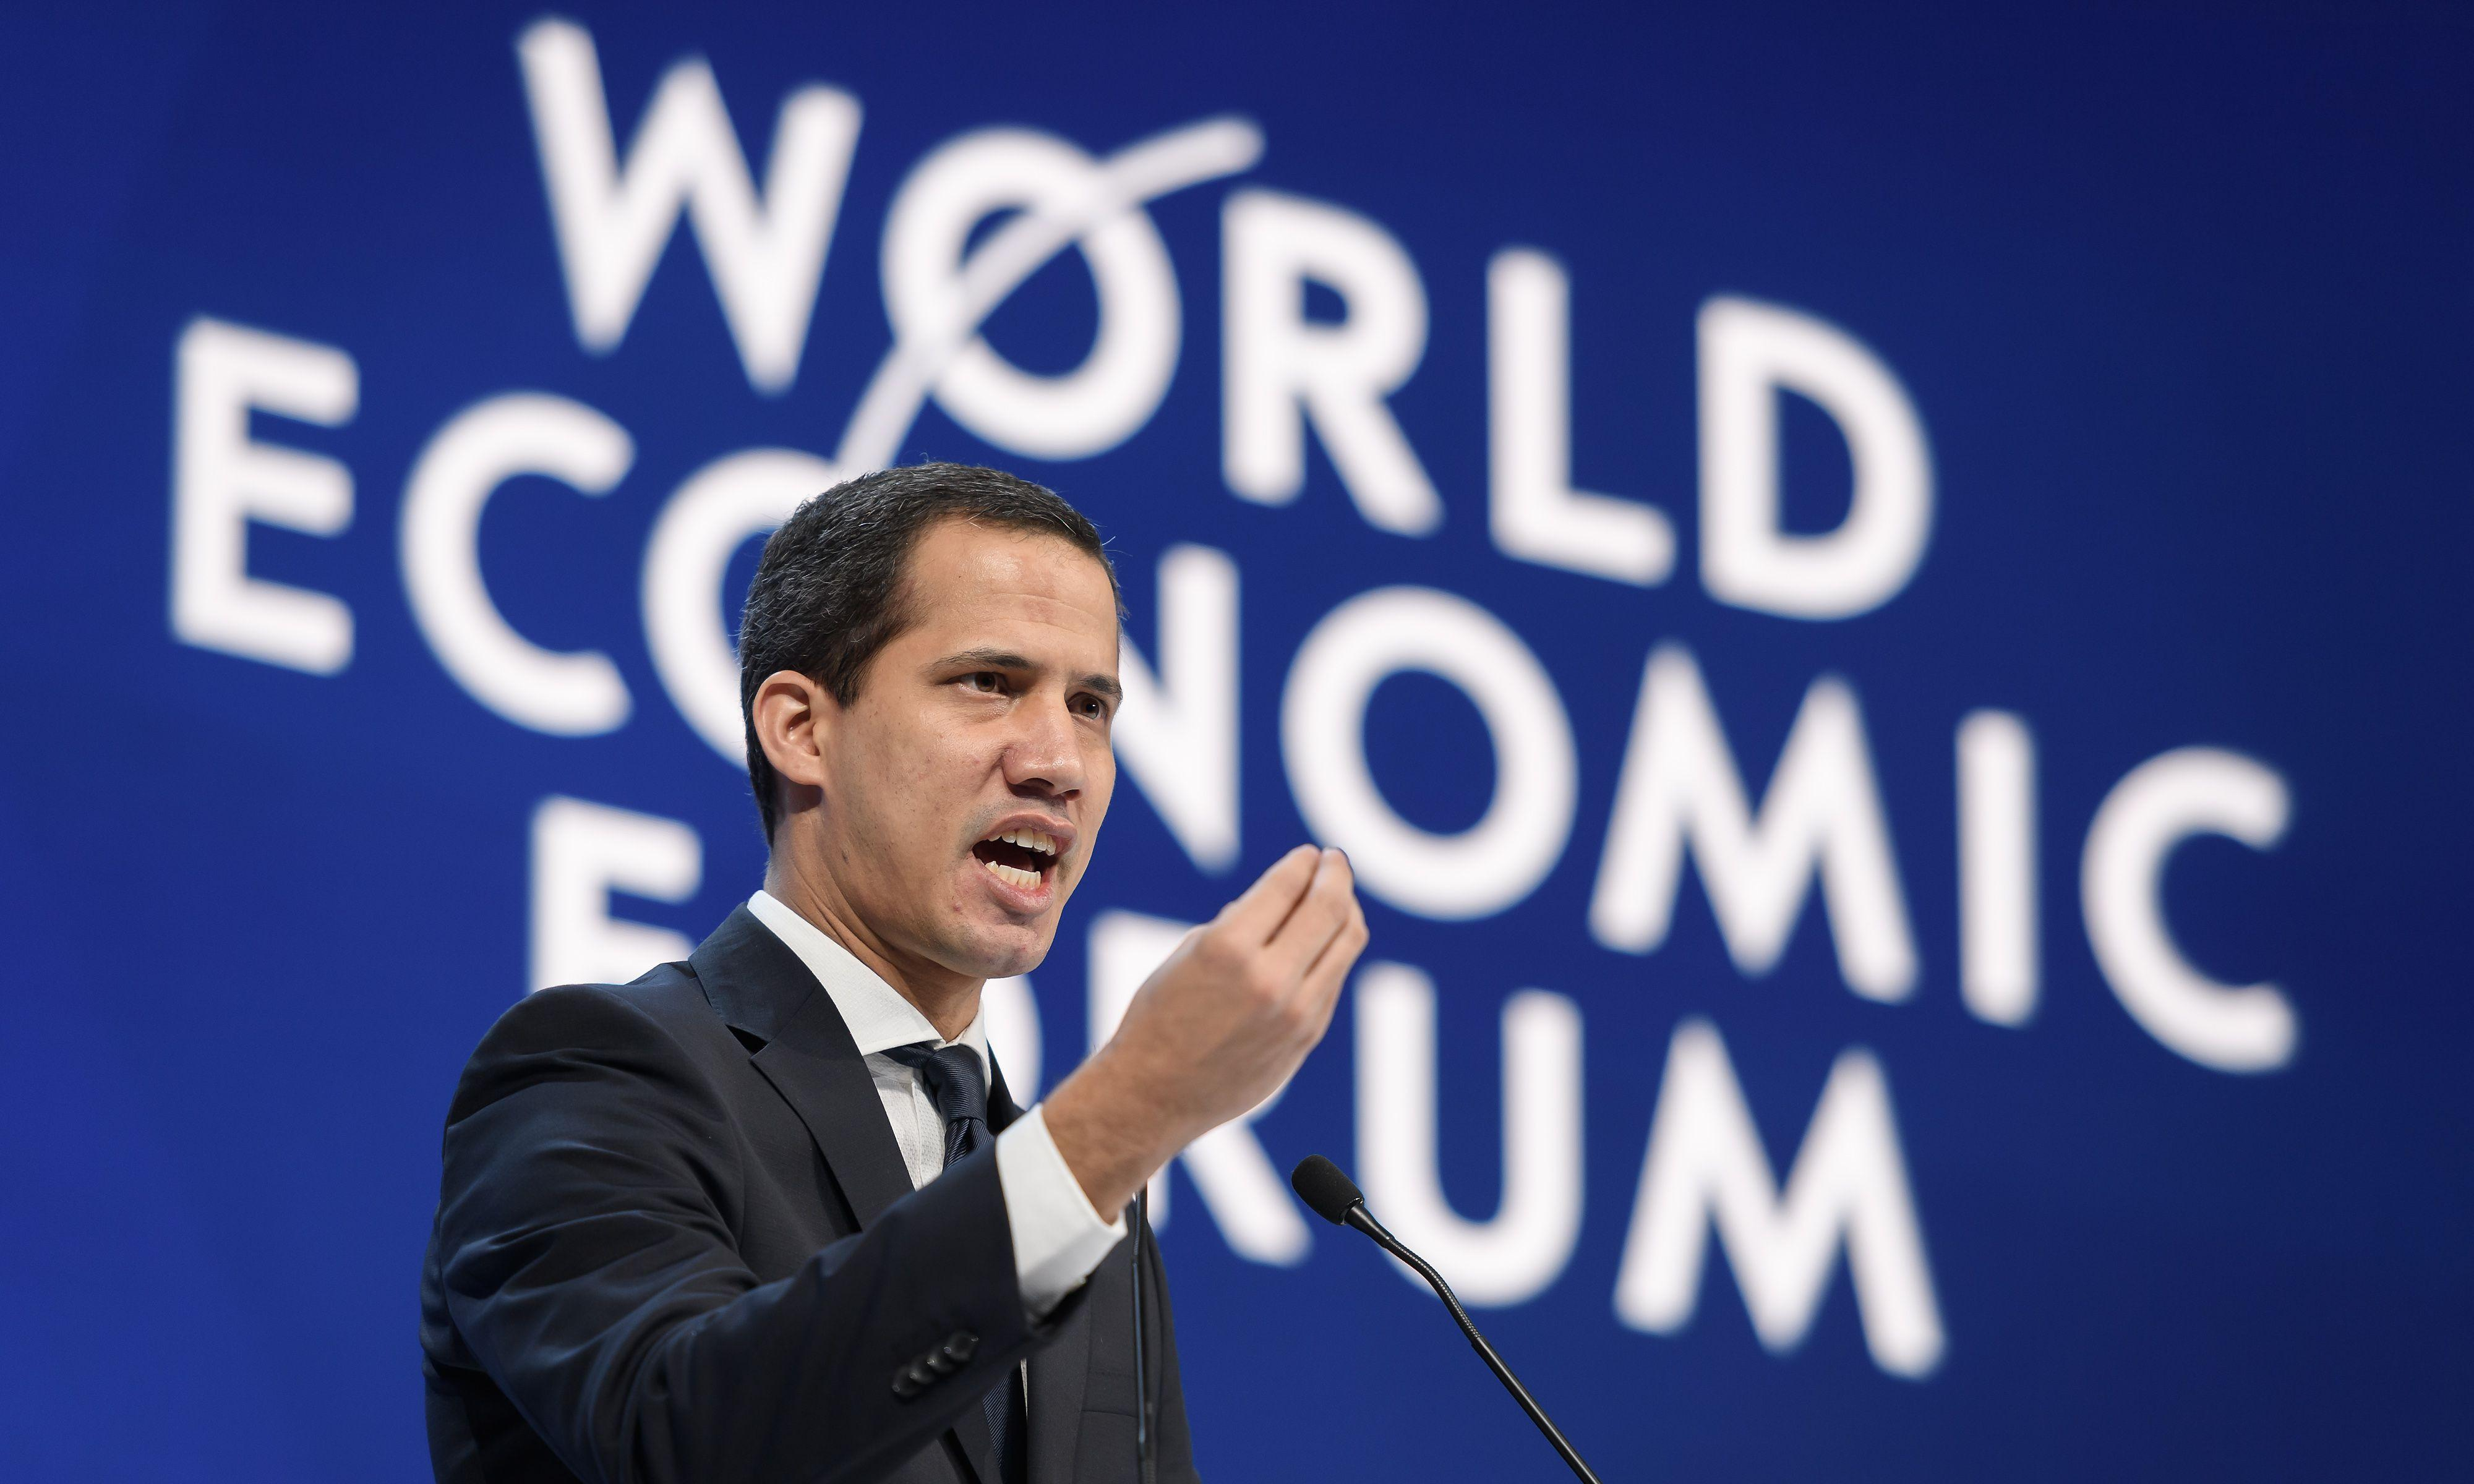 Venezuela opposition in Davos plea for help to overturn 'dictatorship'